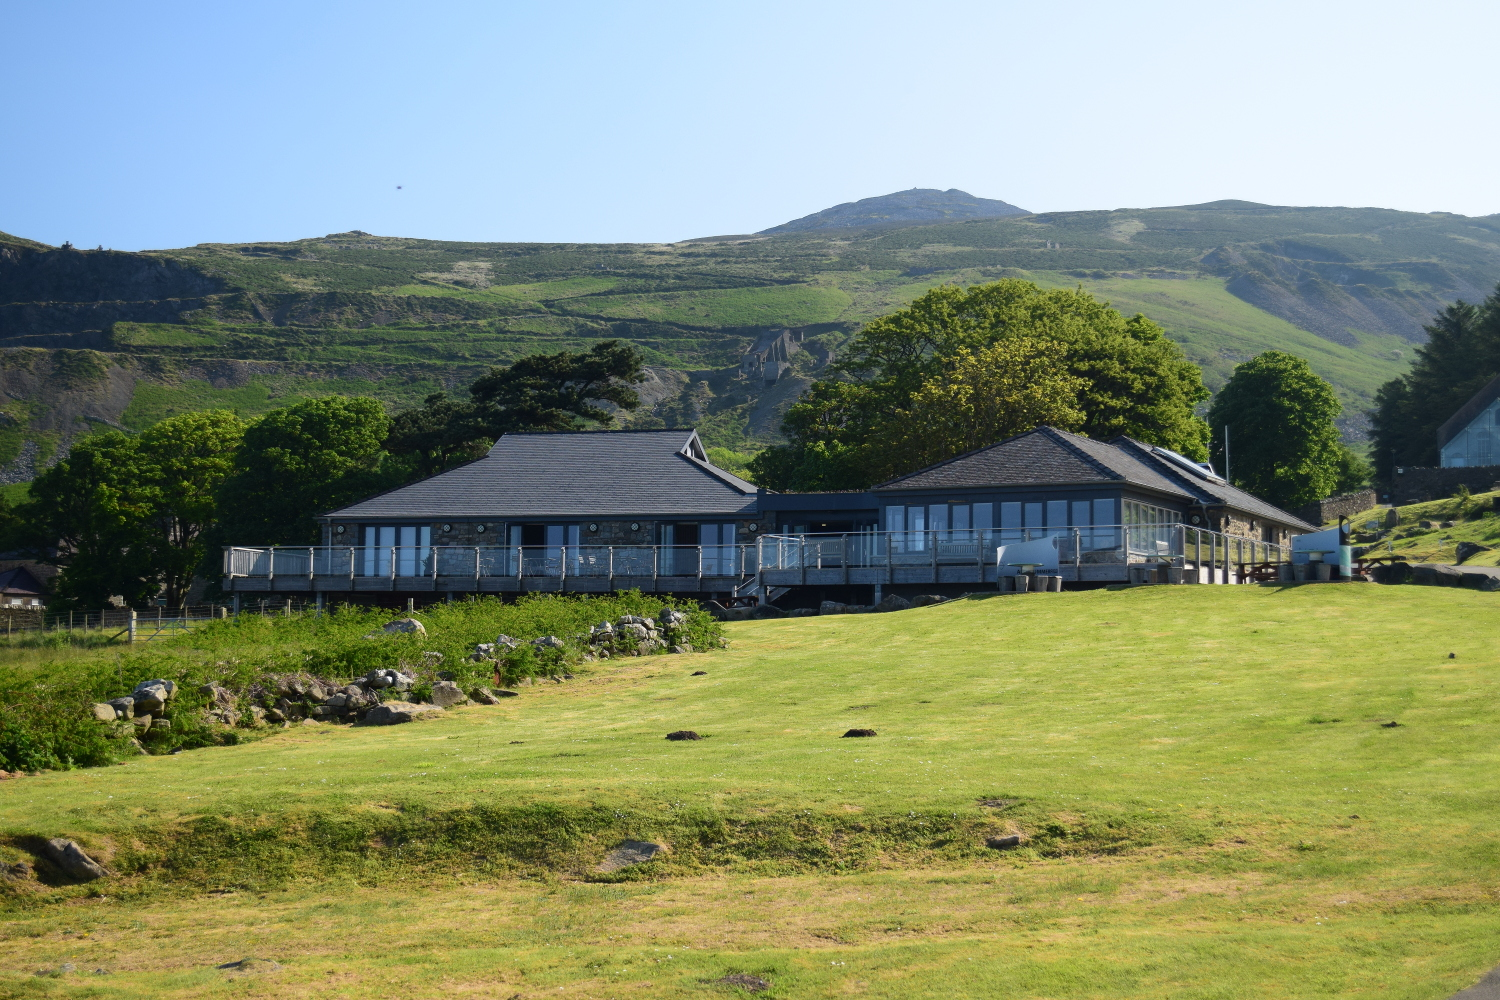 View of the cafe and restaurant at Nant Gwrtheryn Llithfaen Llyn Peninsula North Wales